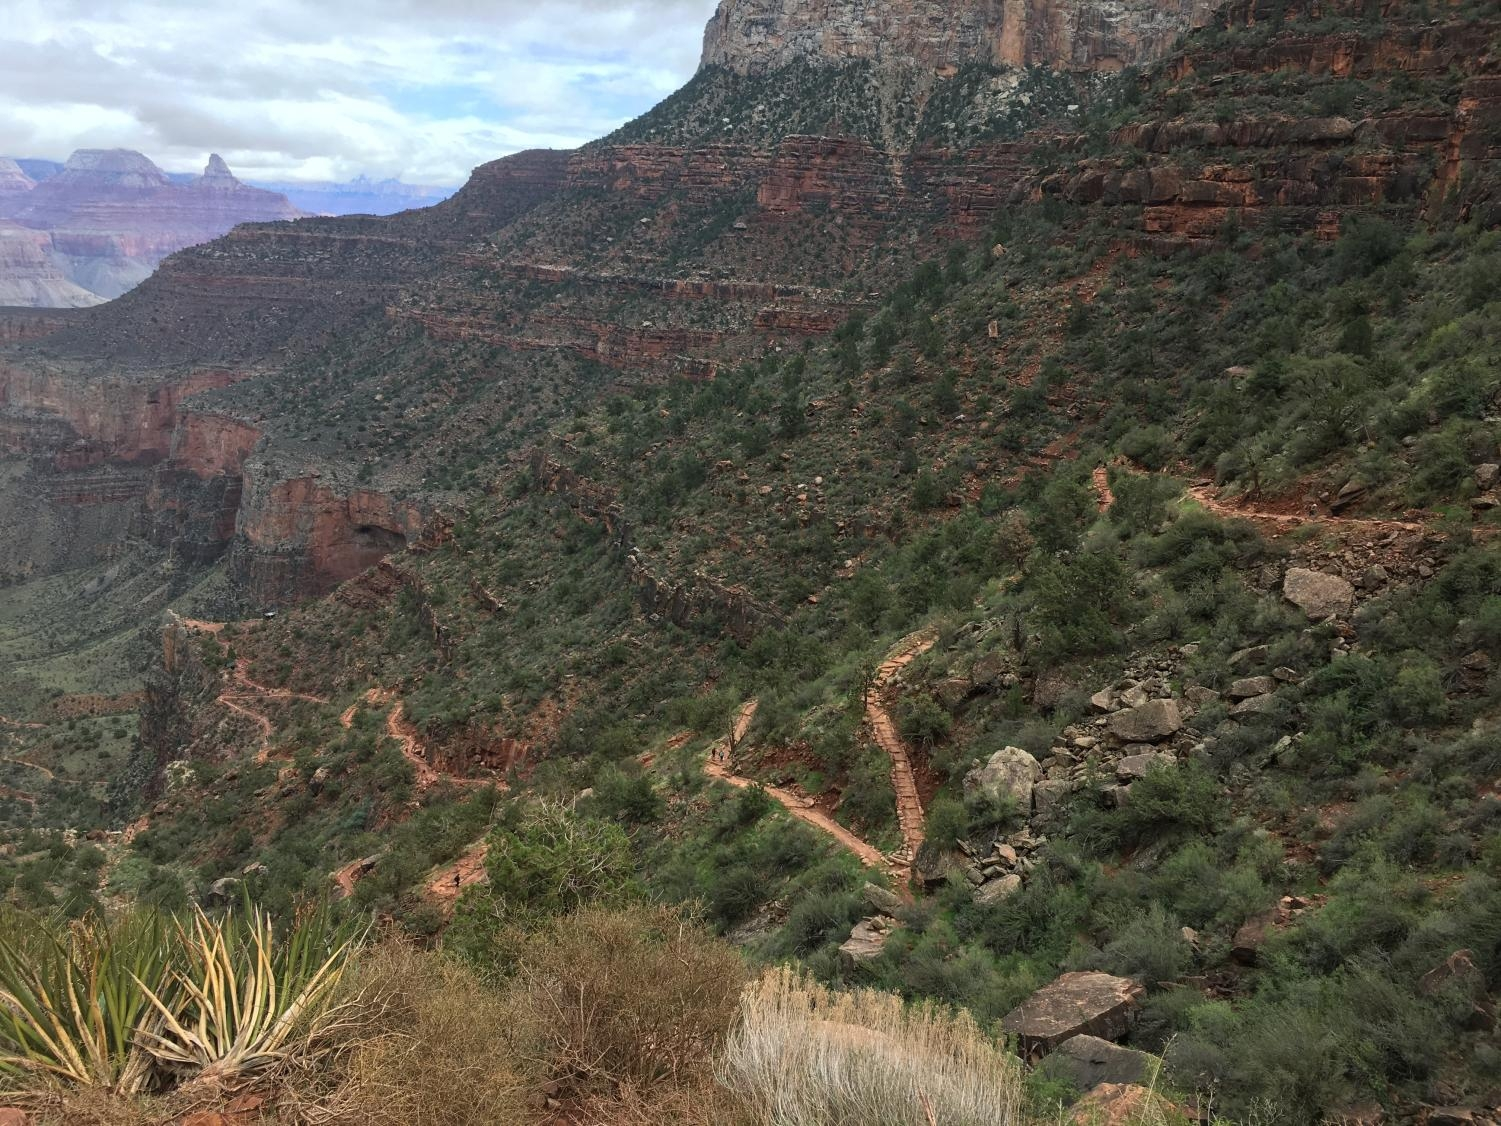 The South Kaibab trail on the South Rim of the Grand Canyon. The trail merges with the Bright Angel trail to go down to the Colorado River.